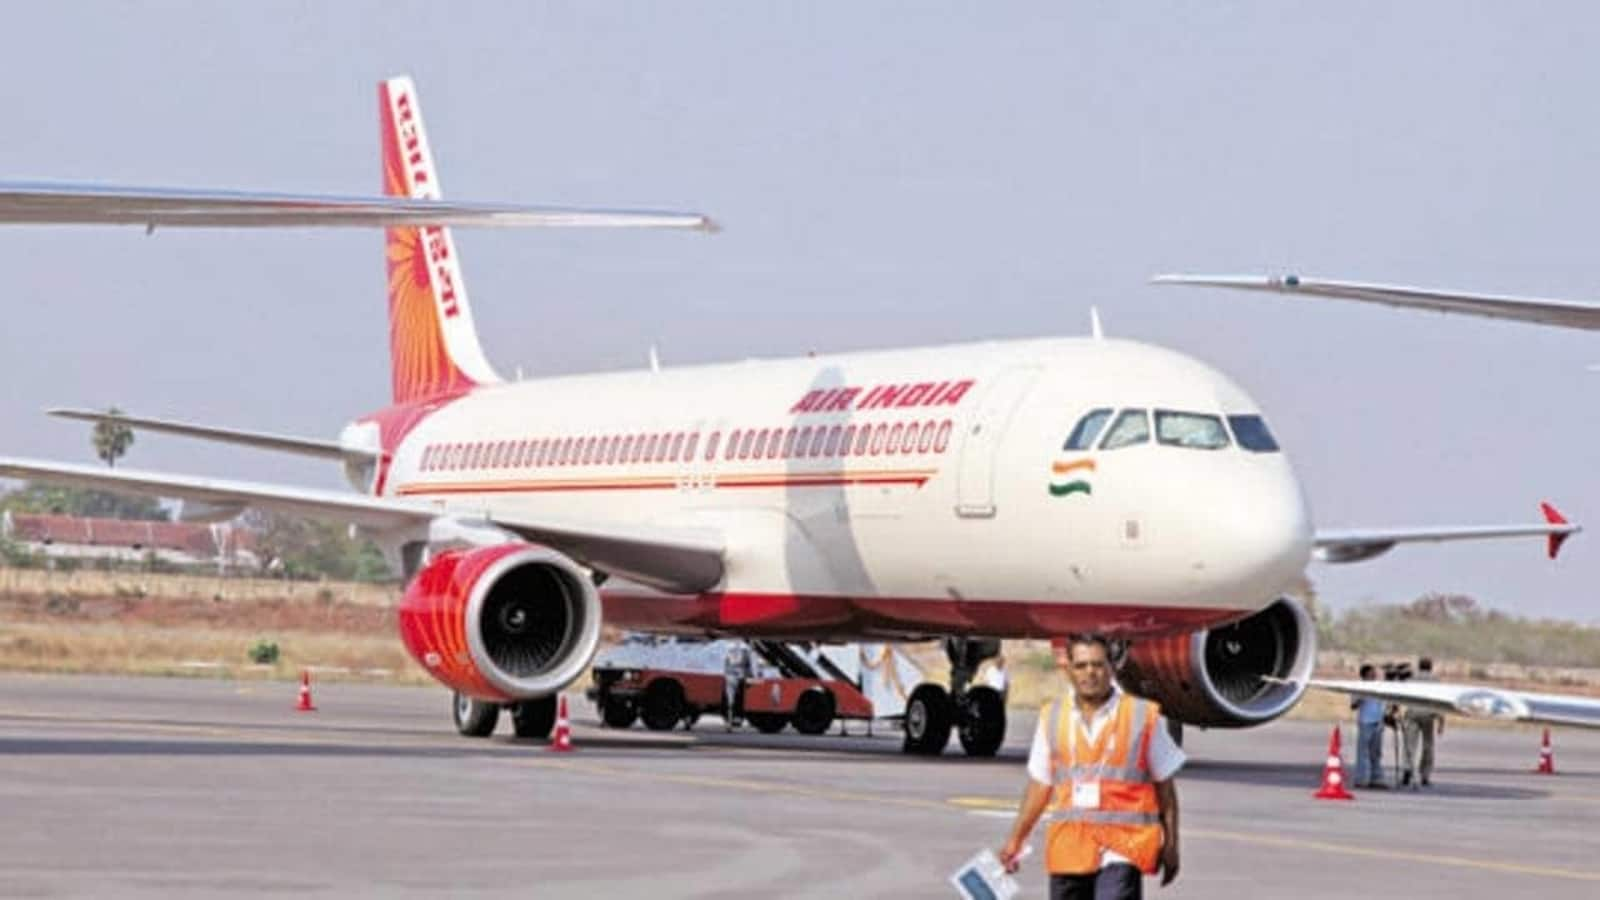 Air India to bring 600 oxygen concentrators from US in next 2 days for private entities - Hindustan Times